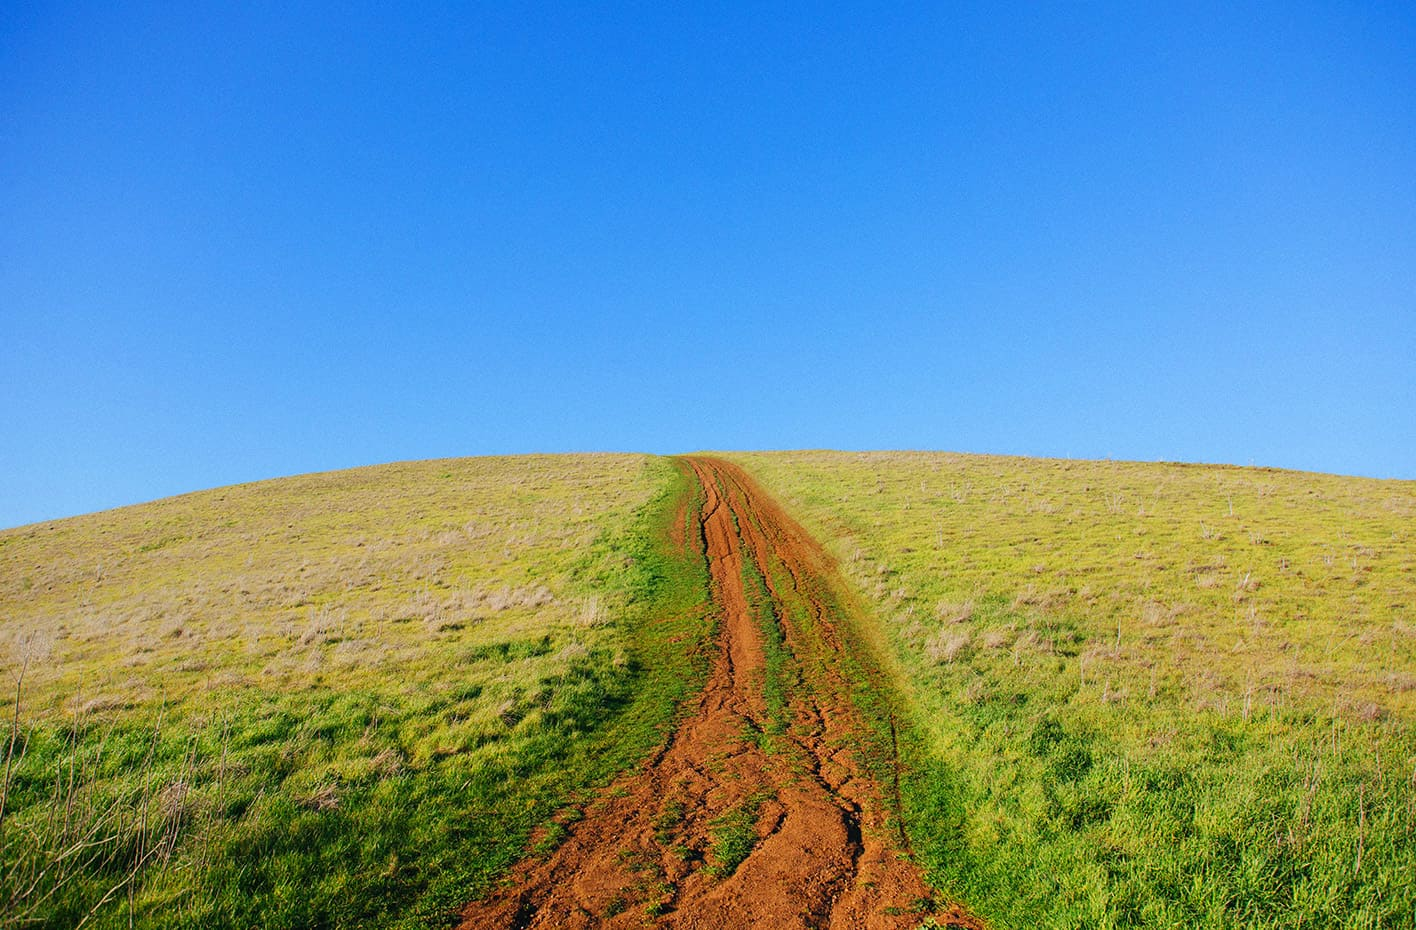 cutting through green noise - field with dirt track